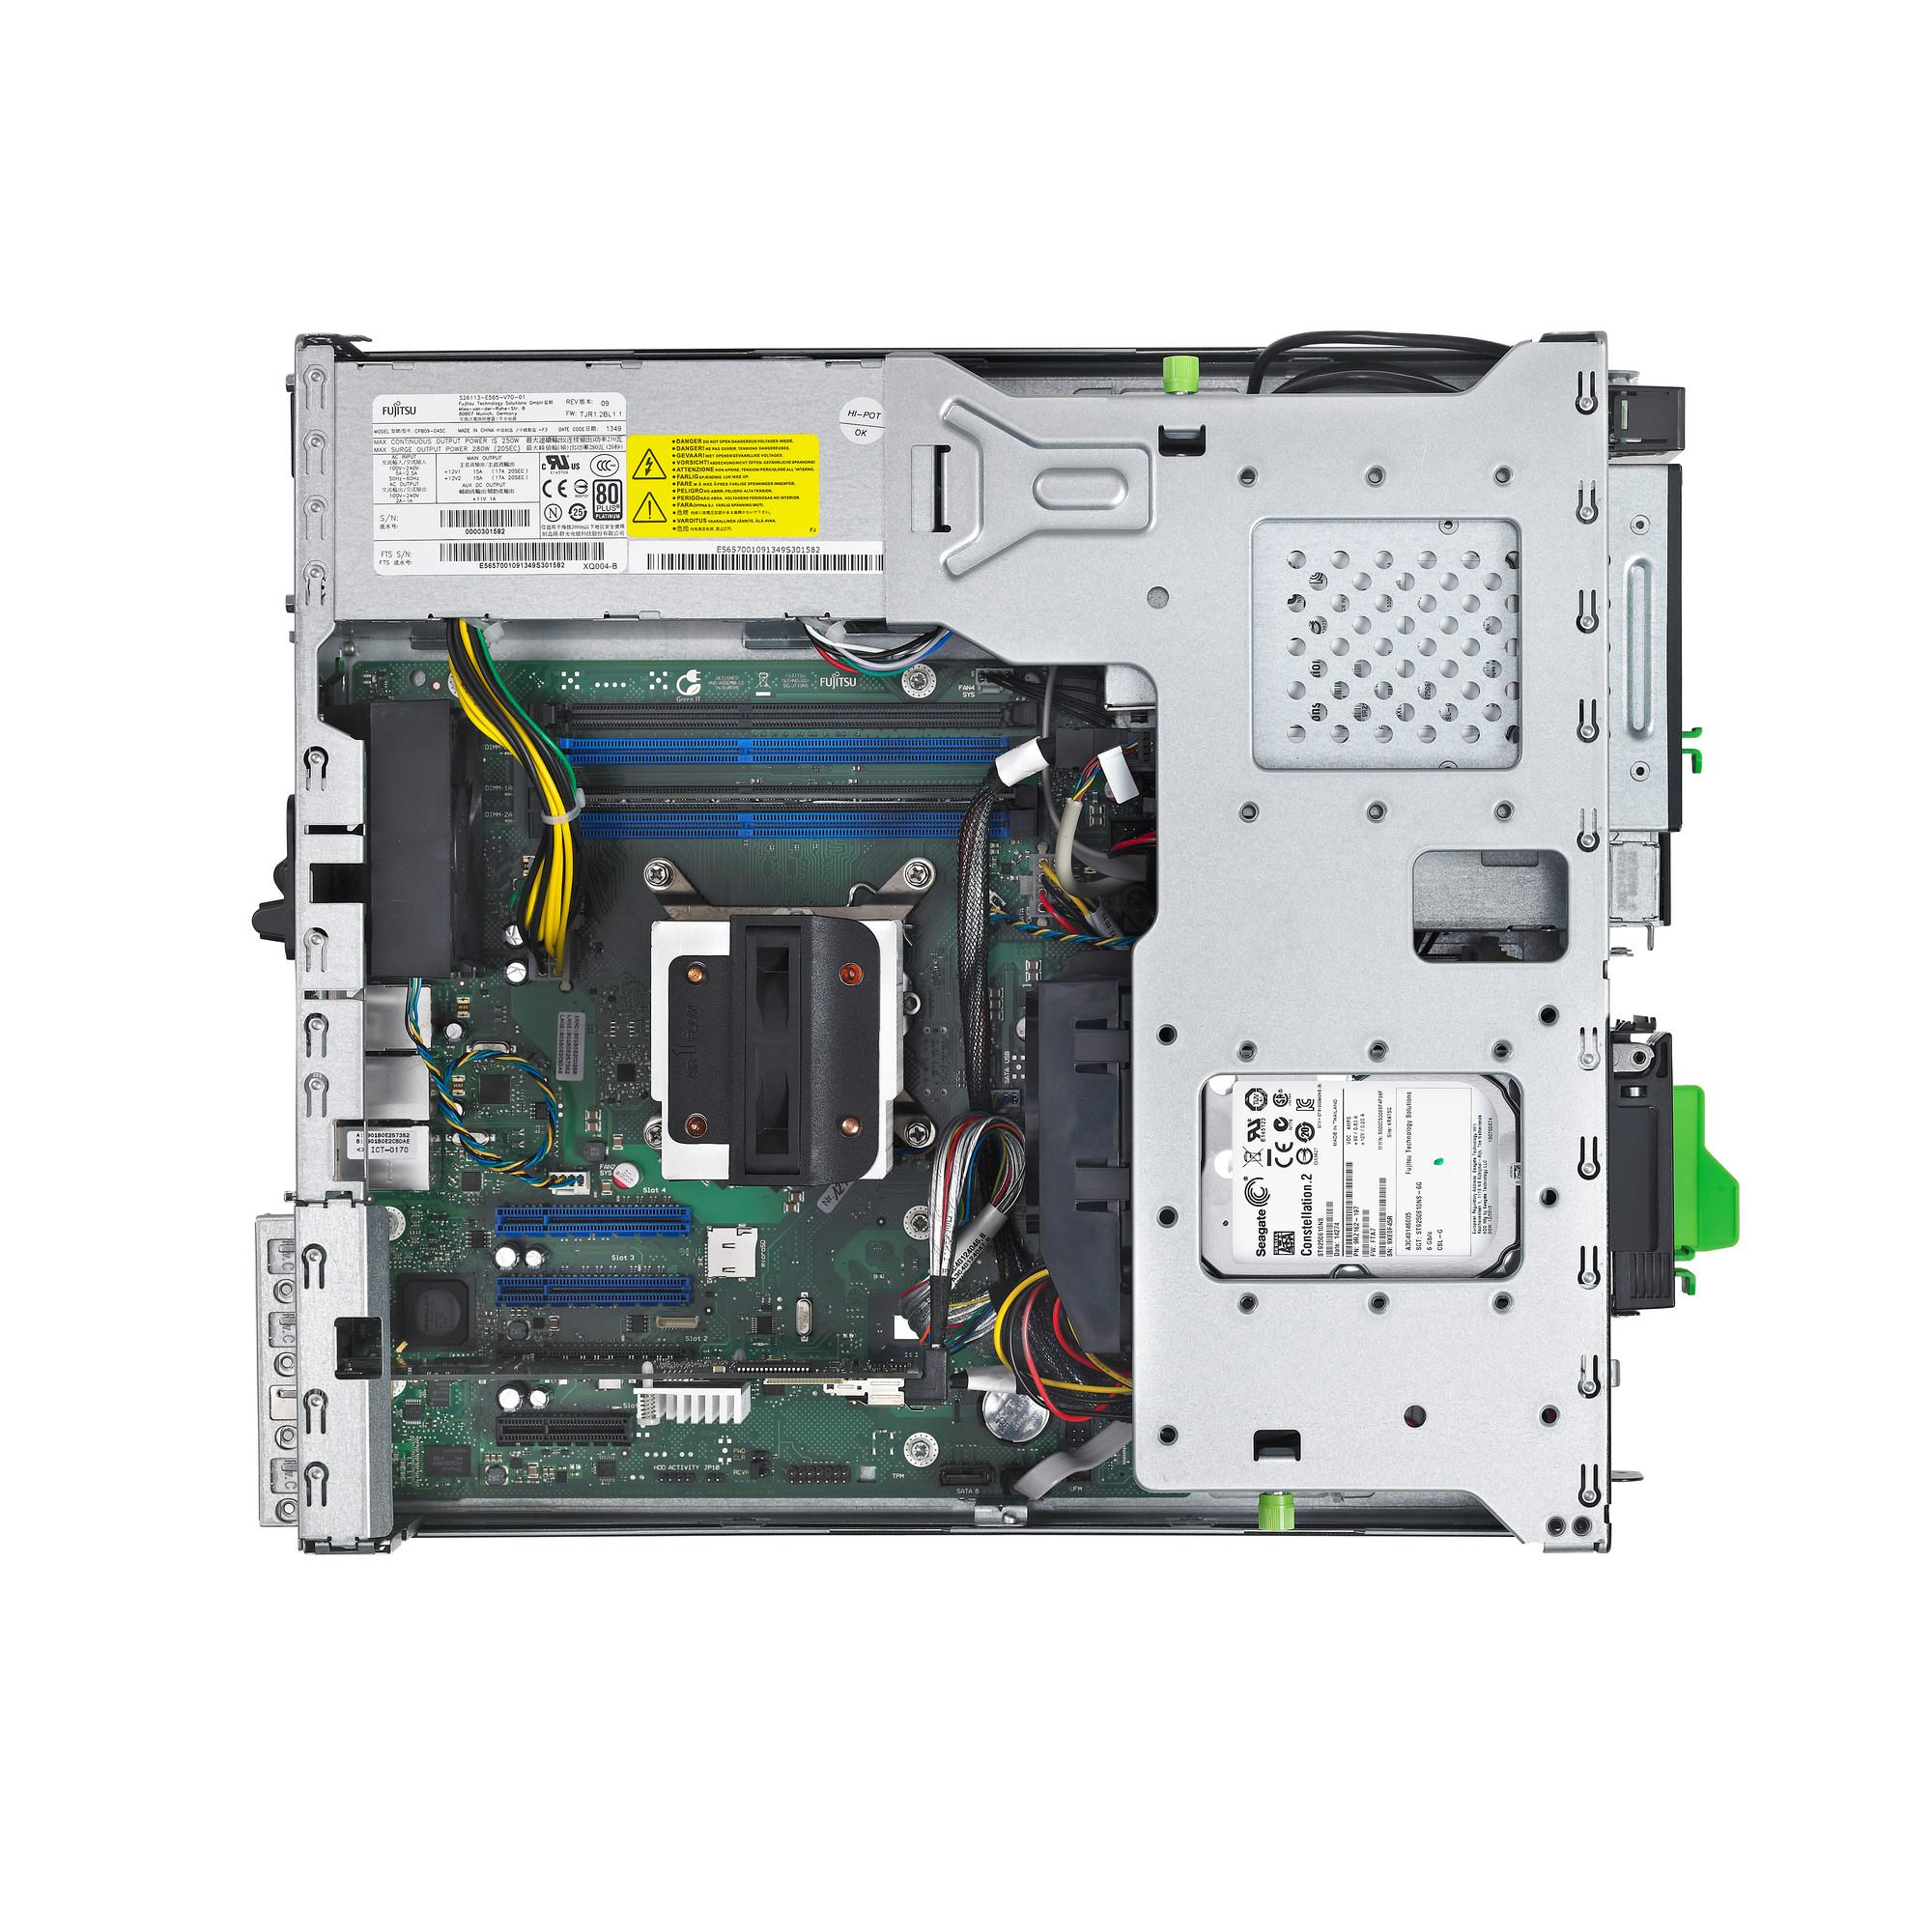 Сървър Primergy TX1320 M1 Intel  i3-4330  8Gb/1x250GB/DVDRW